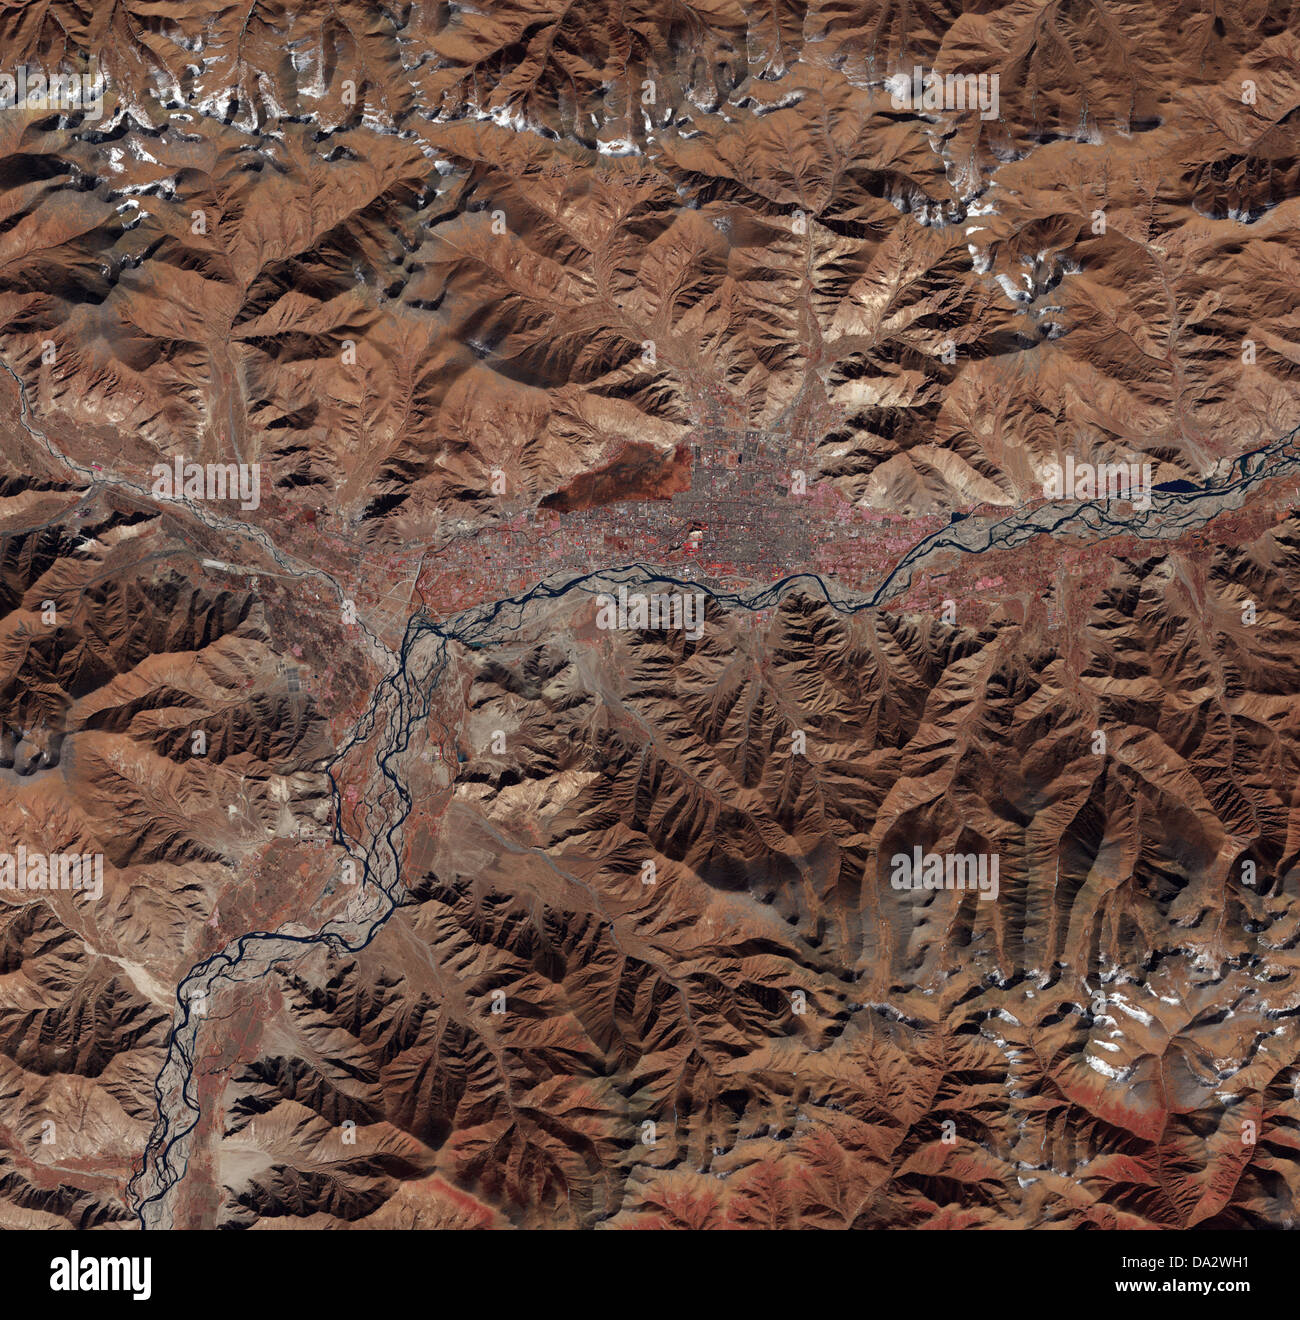 Satellite image of Lhasa, Tibet showing geography and land mass. - Stock Image